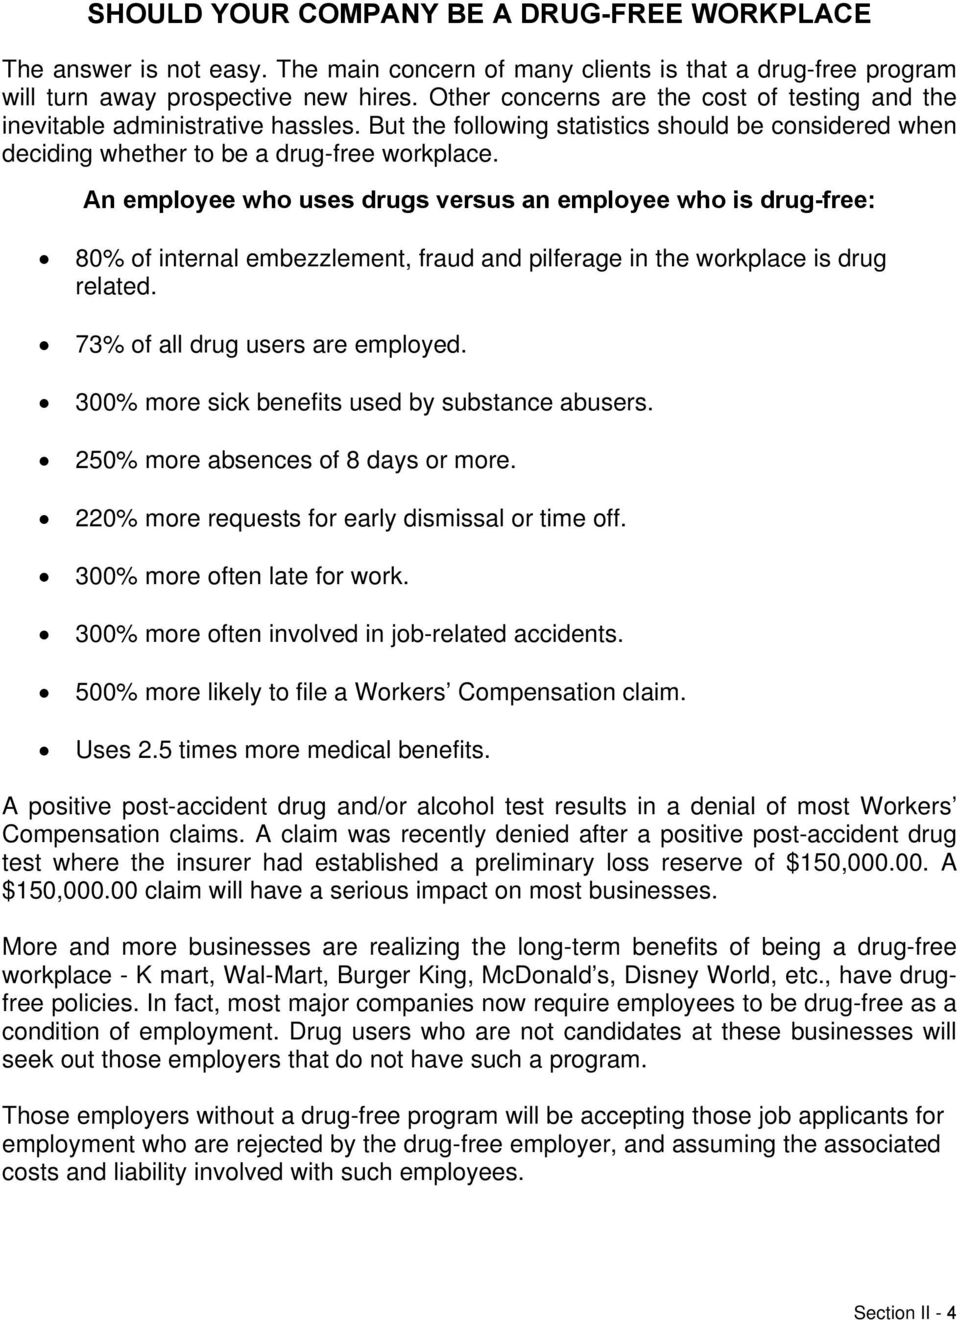 An employee who uses drugs versus an employee who is drug-free: 80% of internal embezzlement, fraud and pilferage in the workplace is drug related. 73% of all drug users are employed.